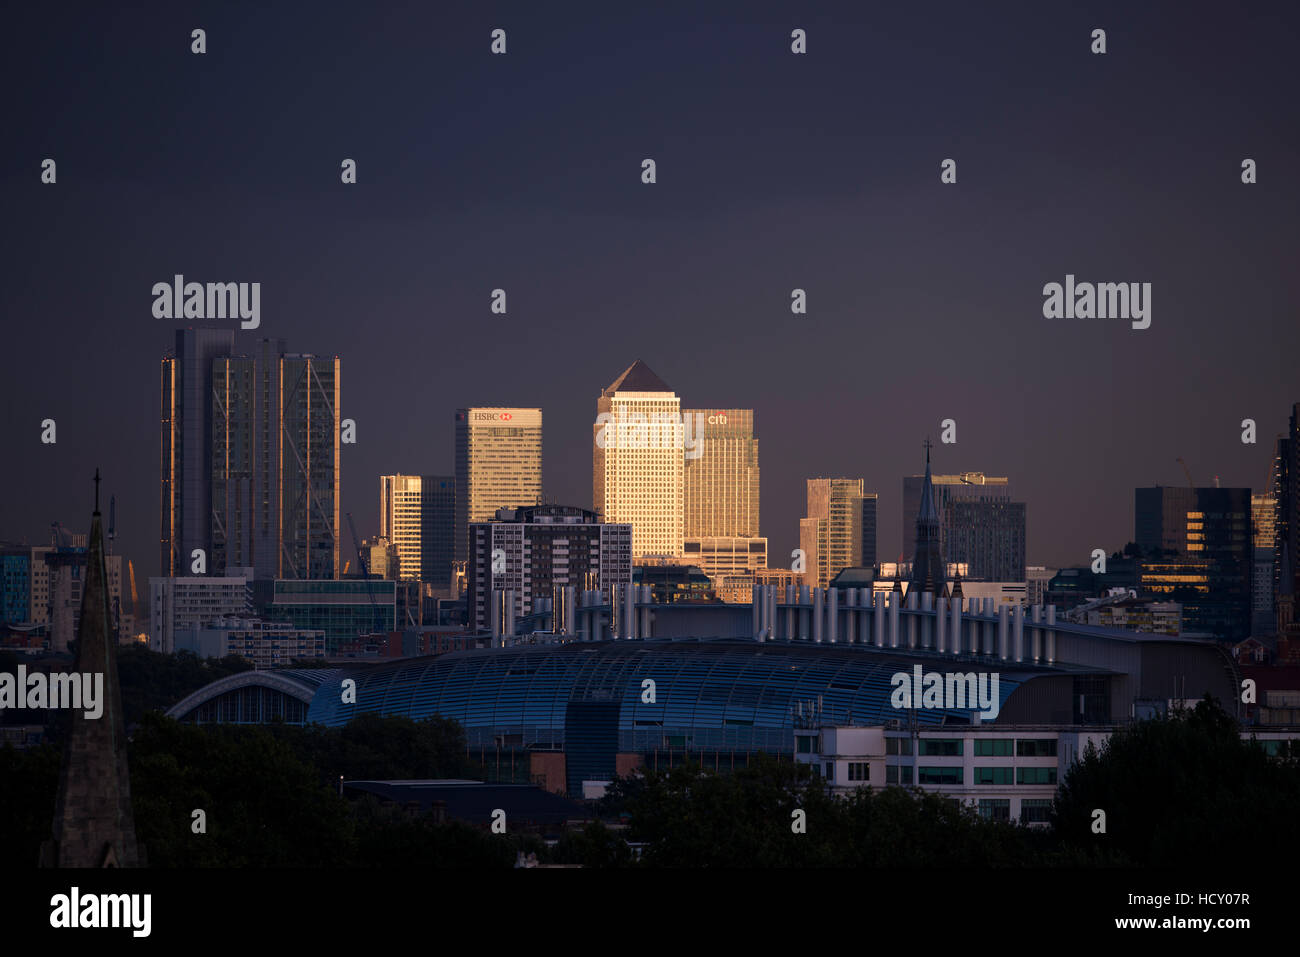 Canary Wharf, Docklands, at sunset from the top of Primrose Hill, London, UK - Stock Image